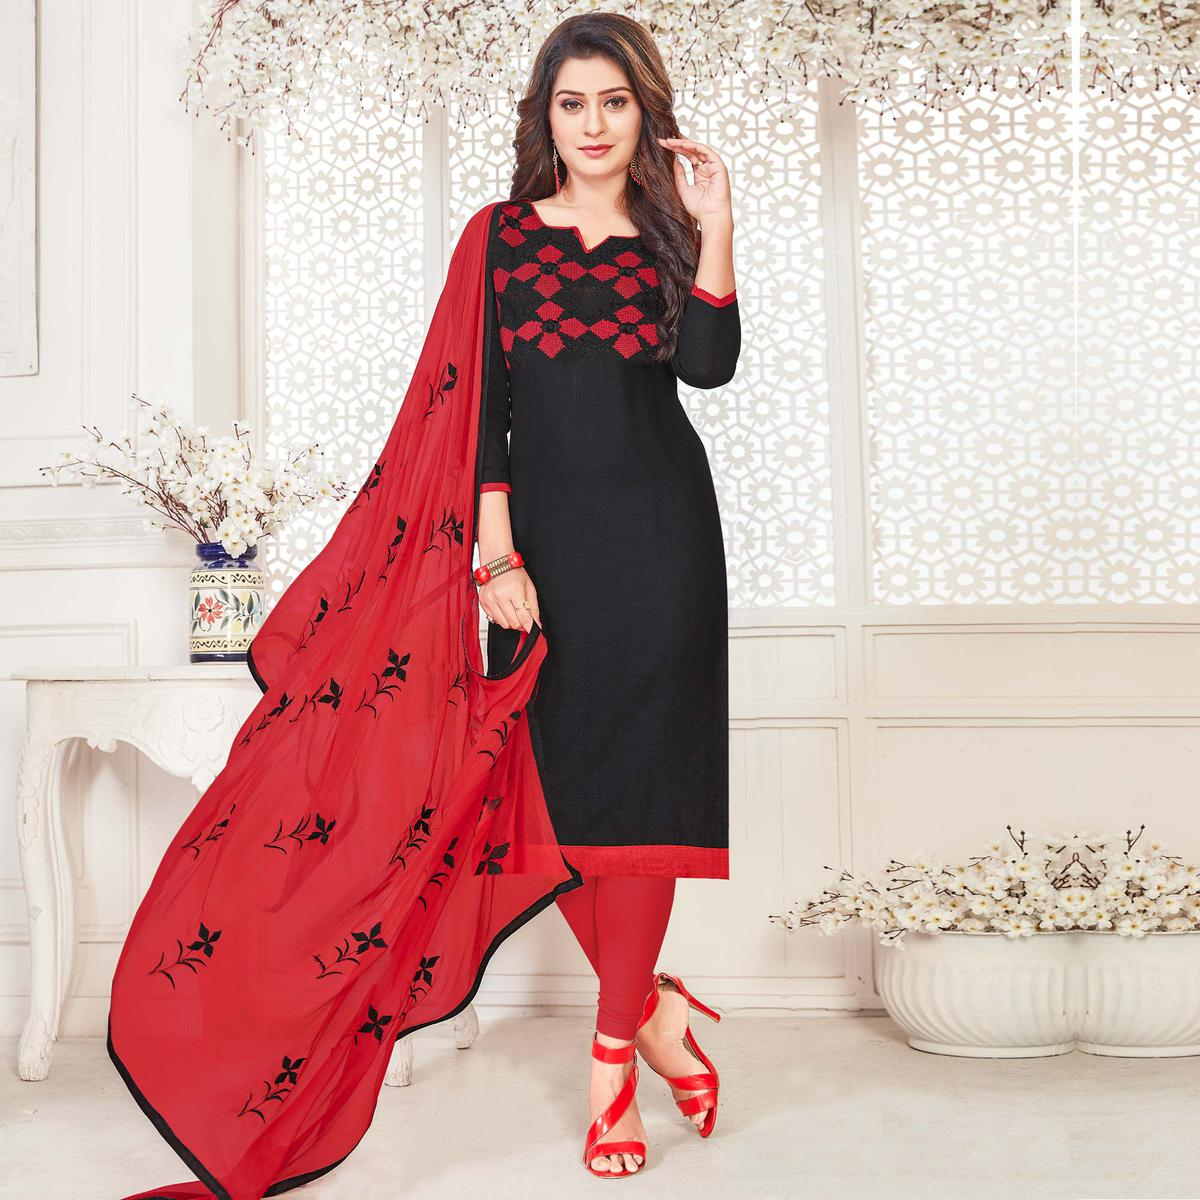 Groovy Black Colored Casual Wear Embroidered Cotton Salwar Suit